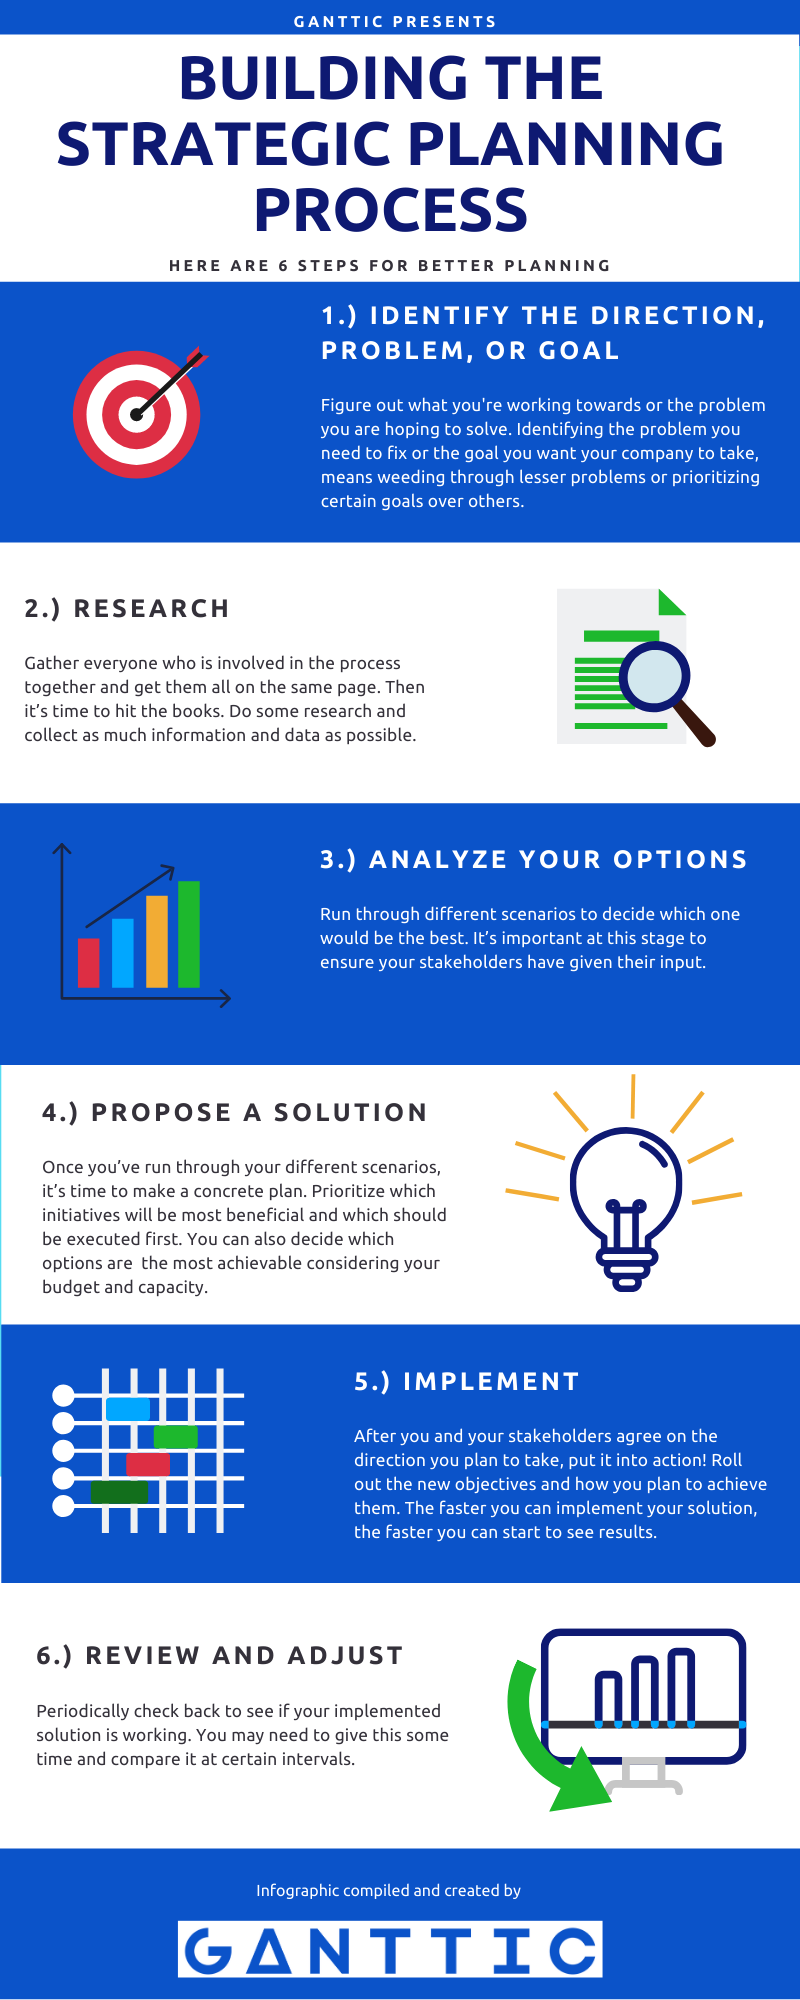 Infographic for 6 steps for building a strategic planning process